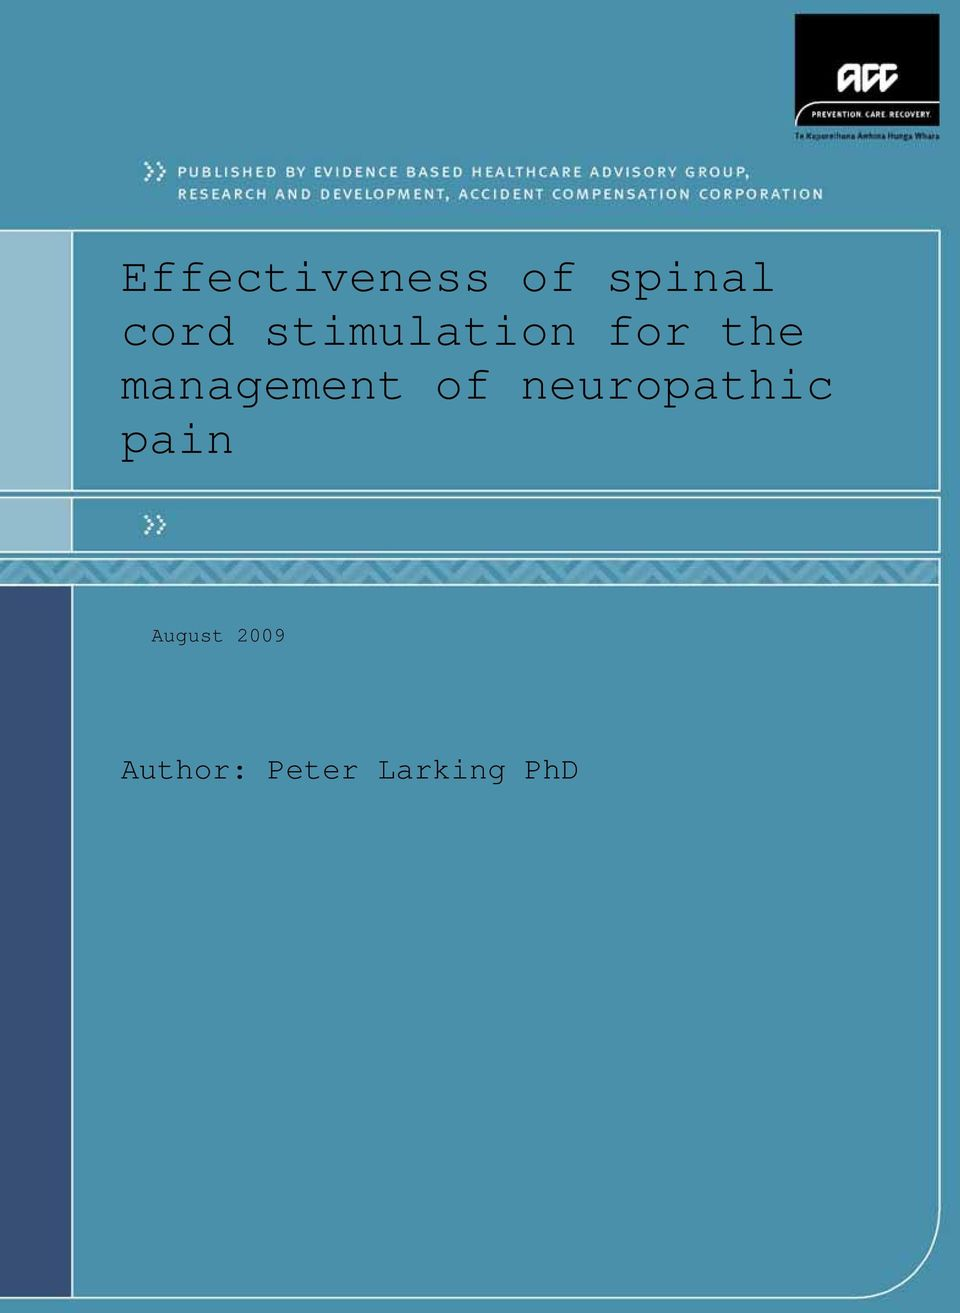 management of neuropathic